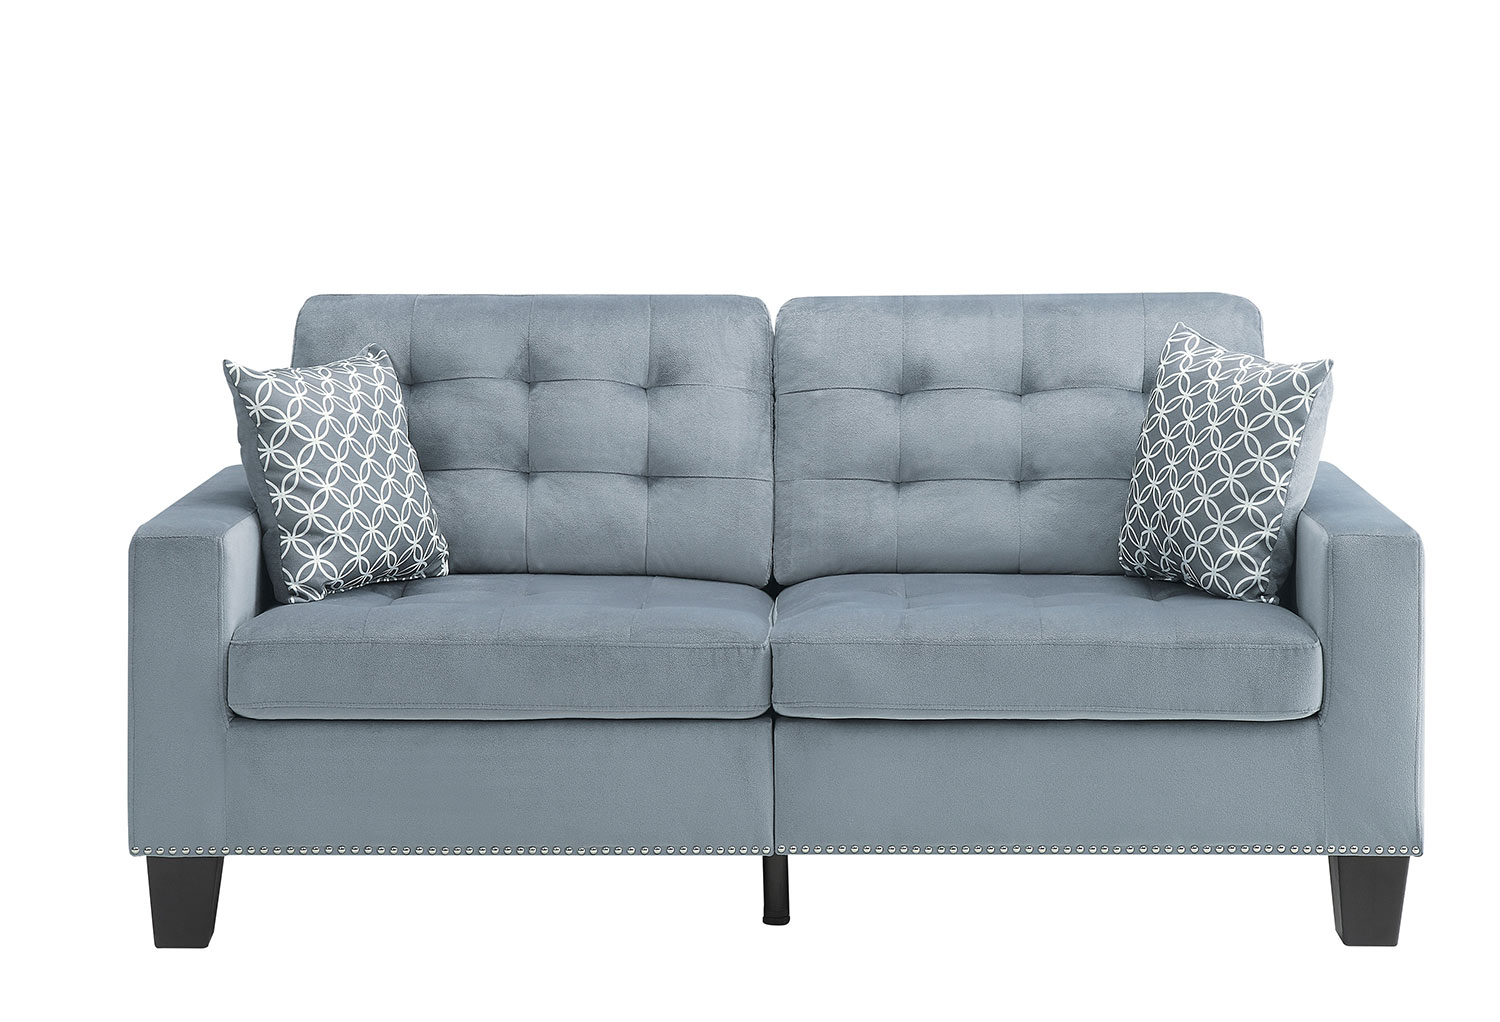 Homelegance Lantana Sofa - Gray